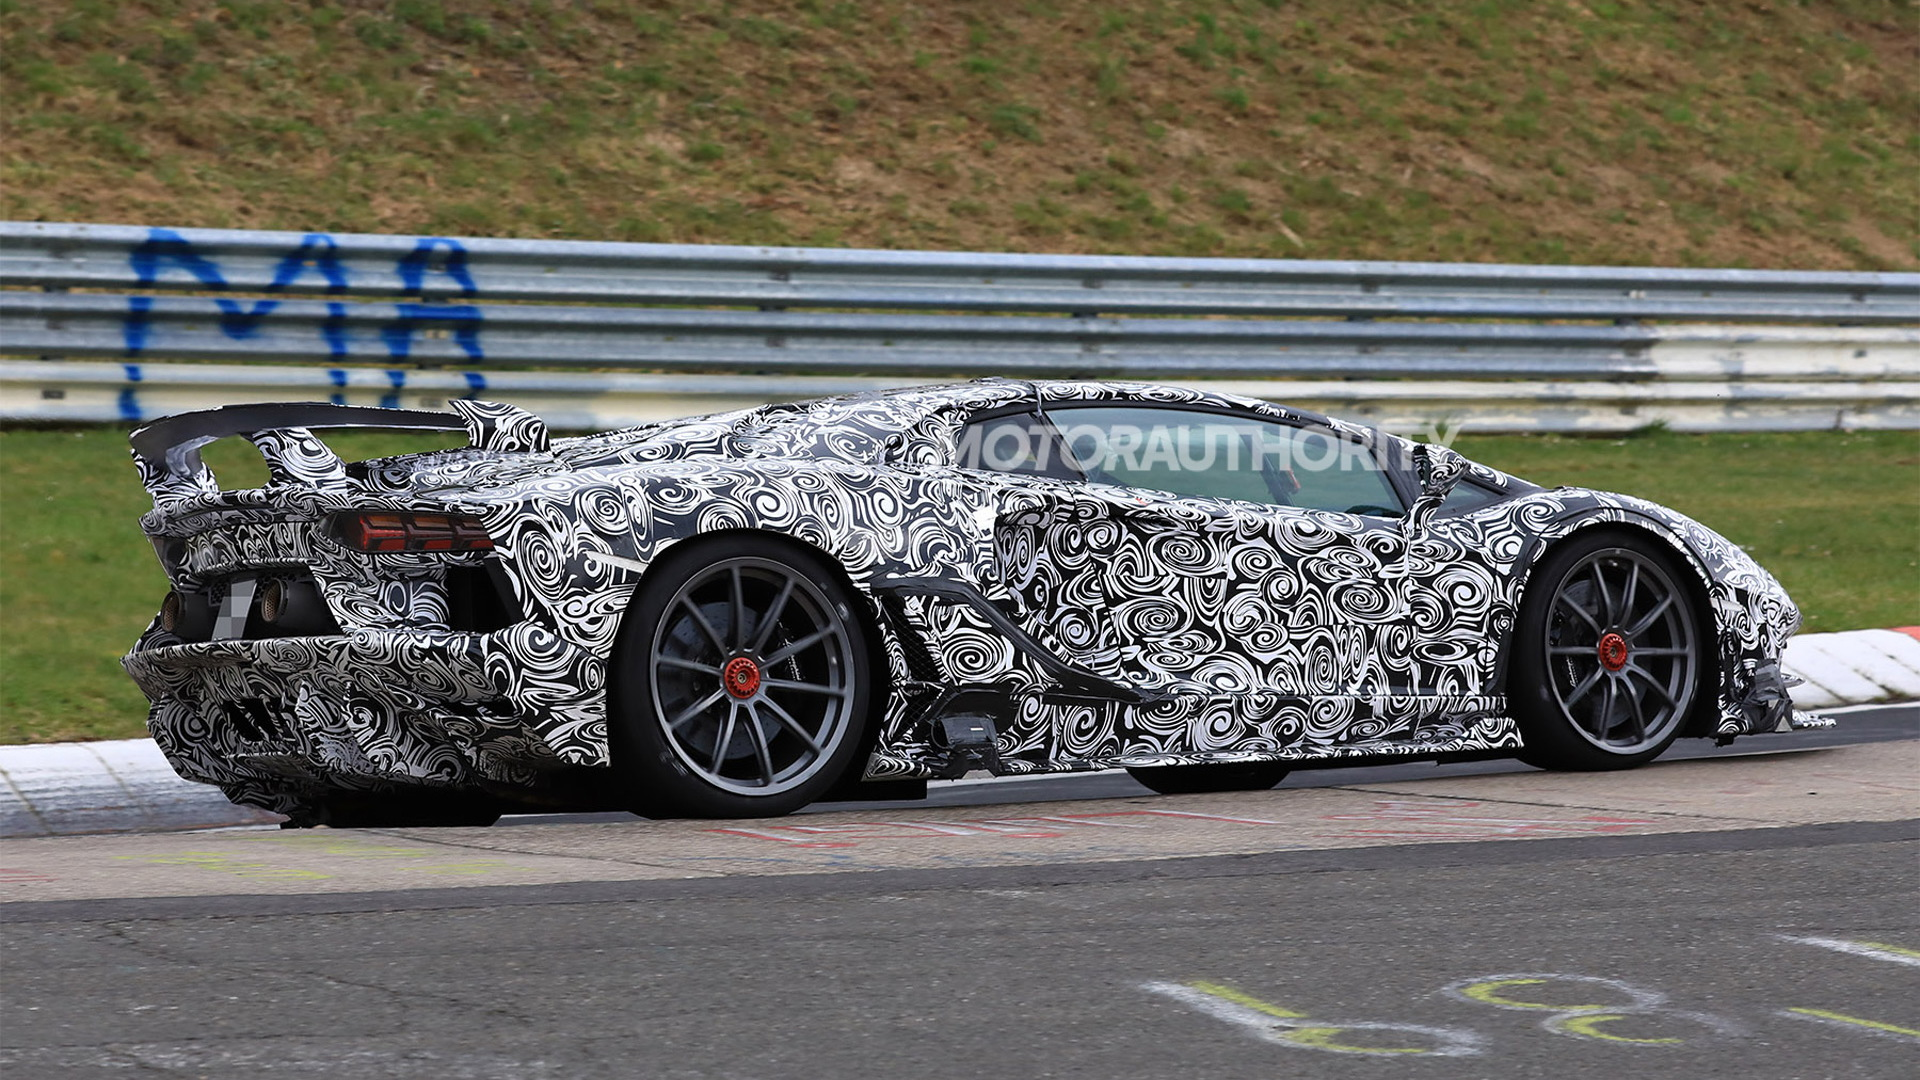 Will The Lamborghini Aventador Svj Break Porsche S